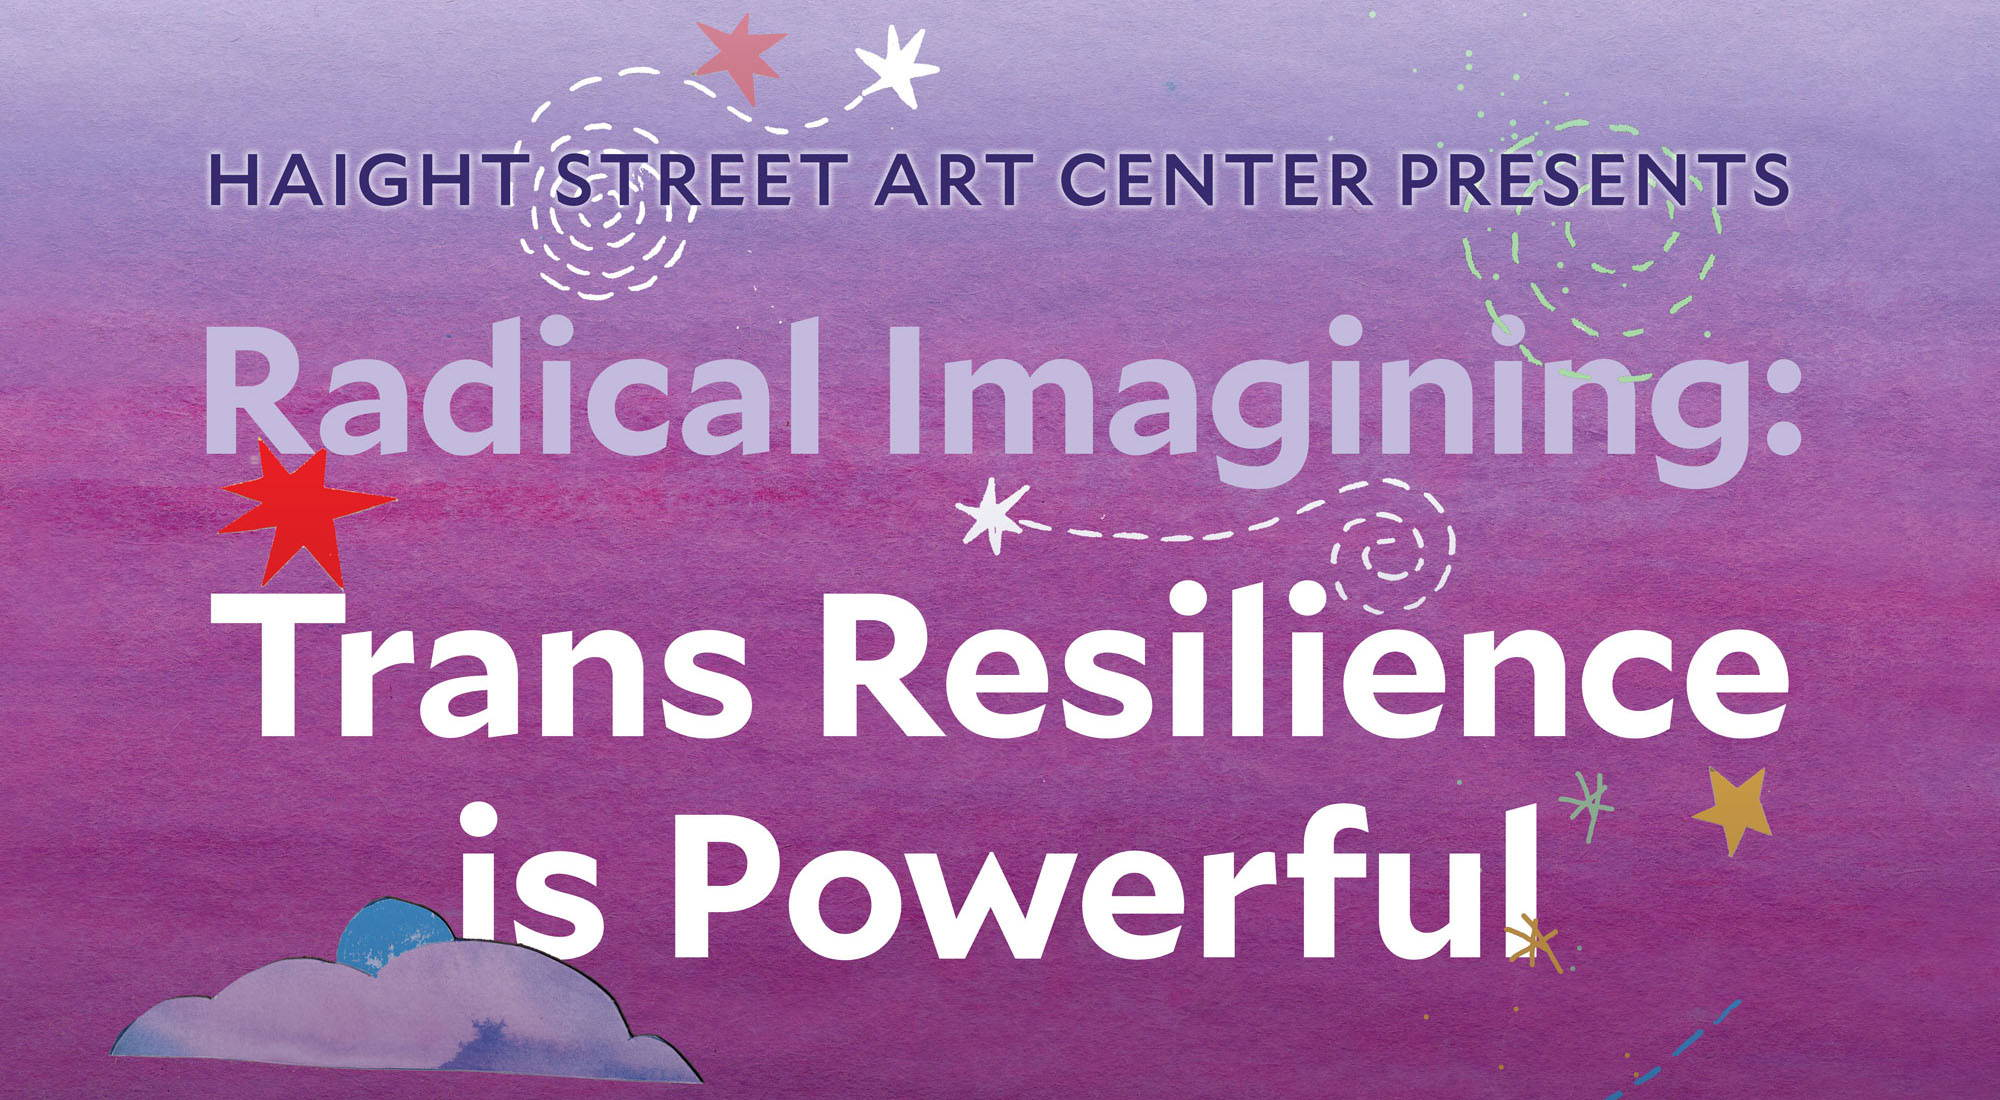 Radical Imagining: Trans Resilience is Powerful